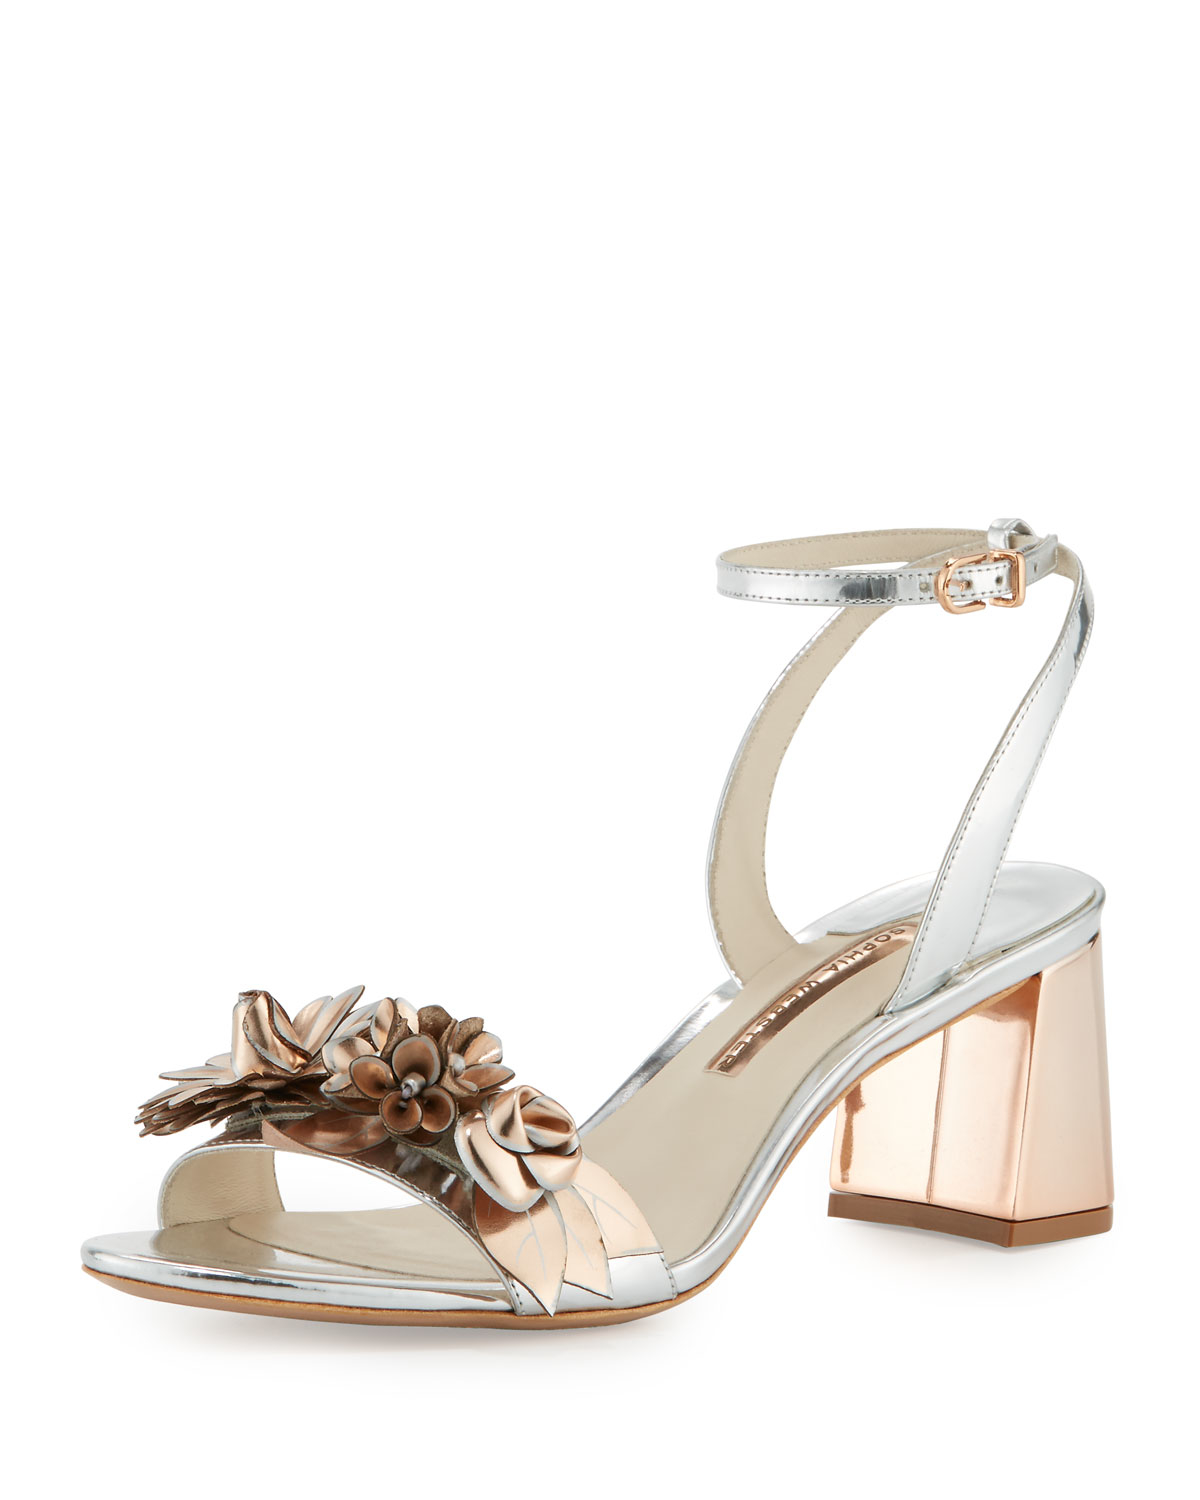 b350385b320 Lyst - Sophia Webster Lilico Patent-leather Block-heel Sandals in ...